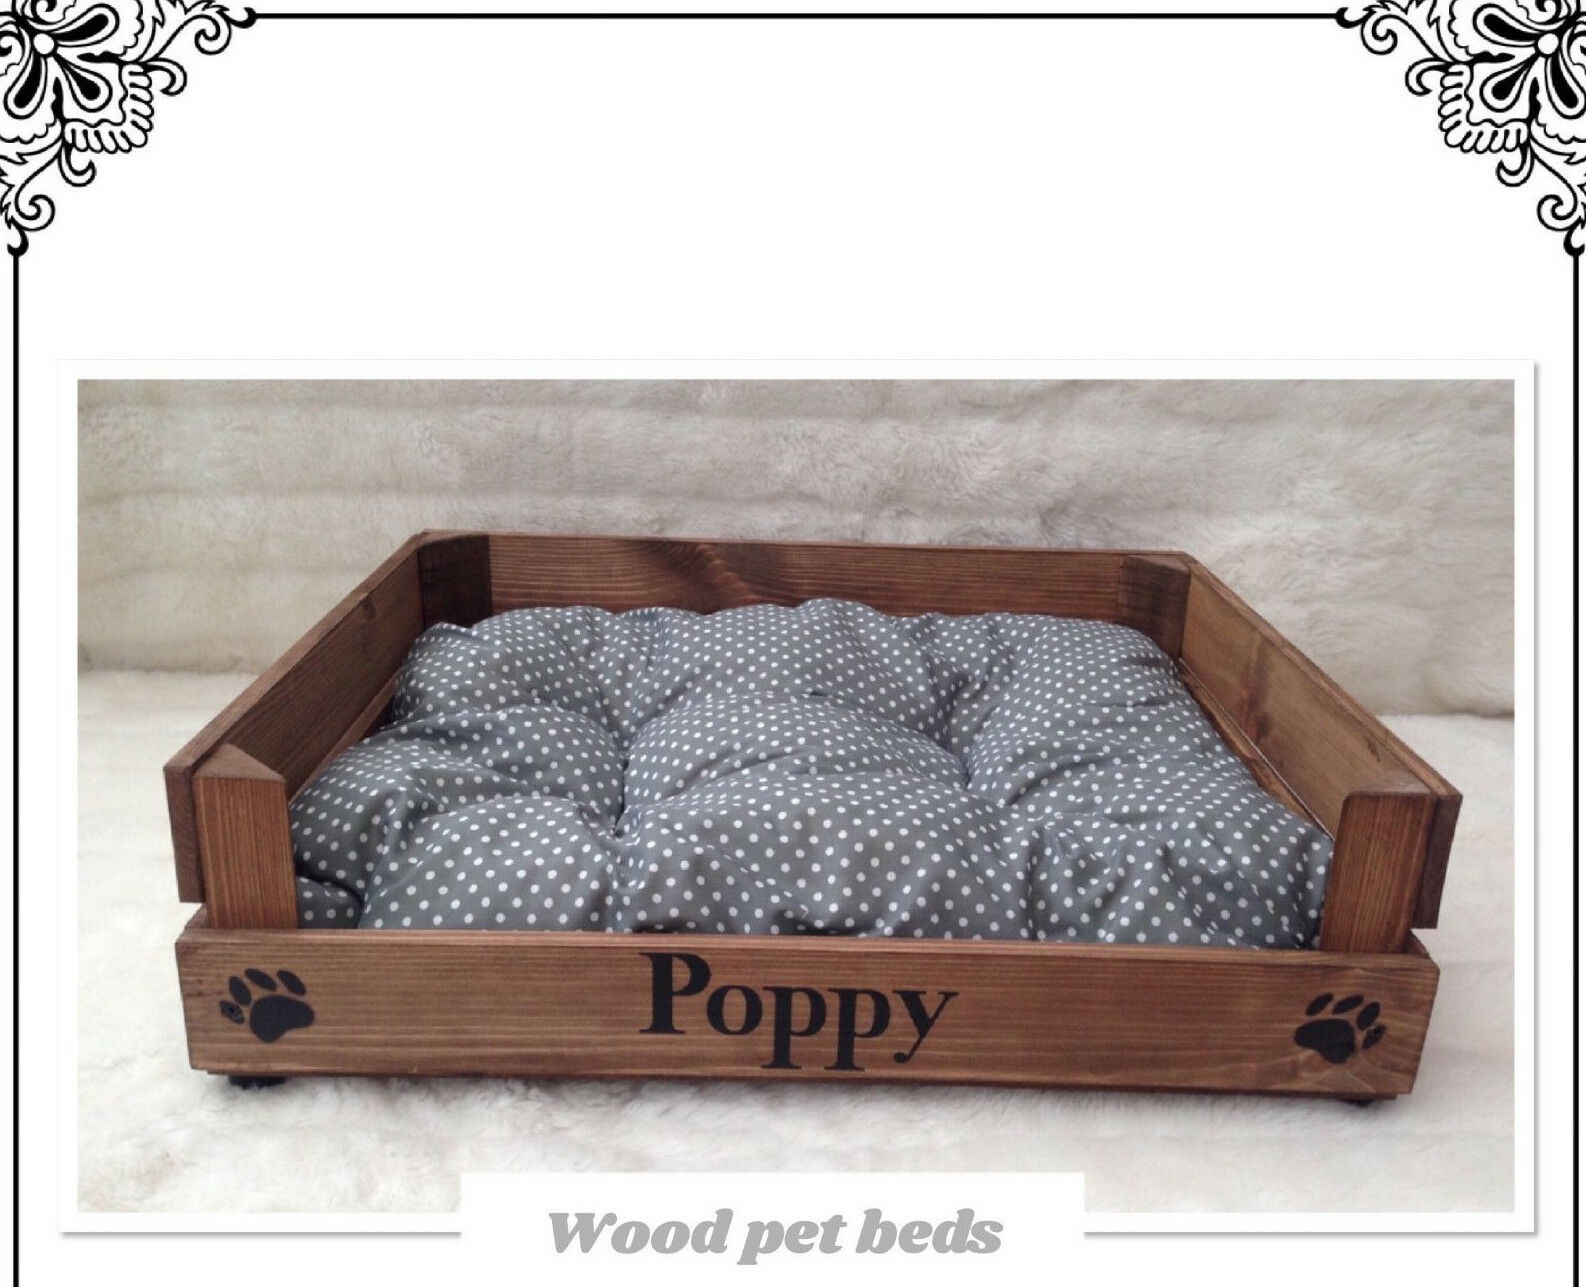 WOOD PET BED CAN BE PERSONALIZED FOR YOUR PUPPY CAT PUG DOG  huahua PUG